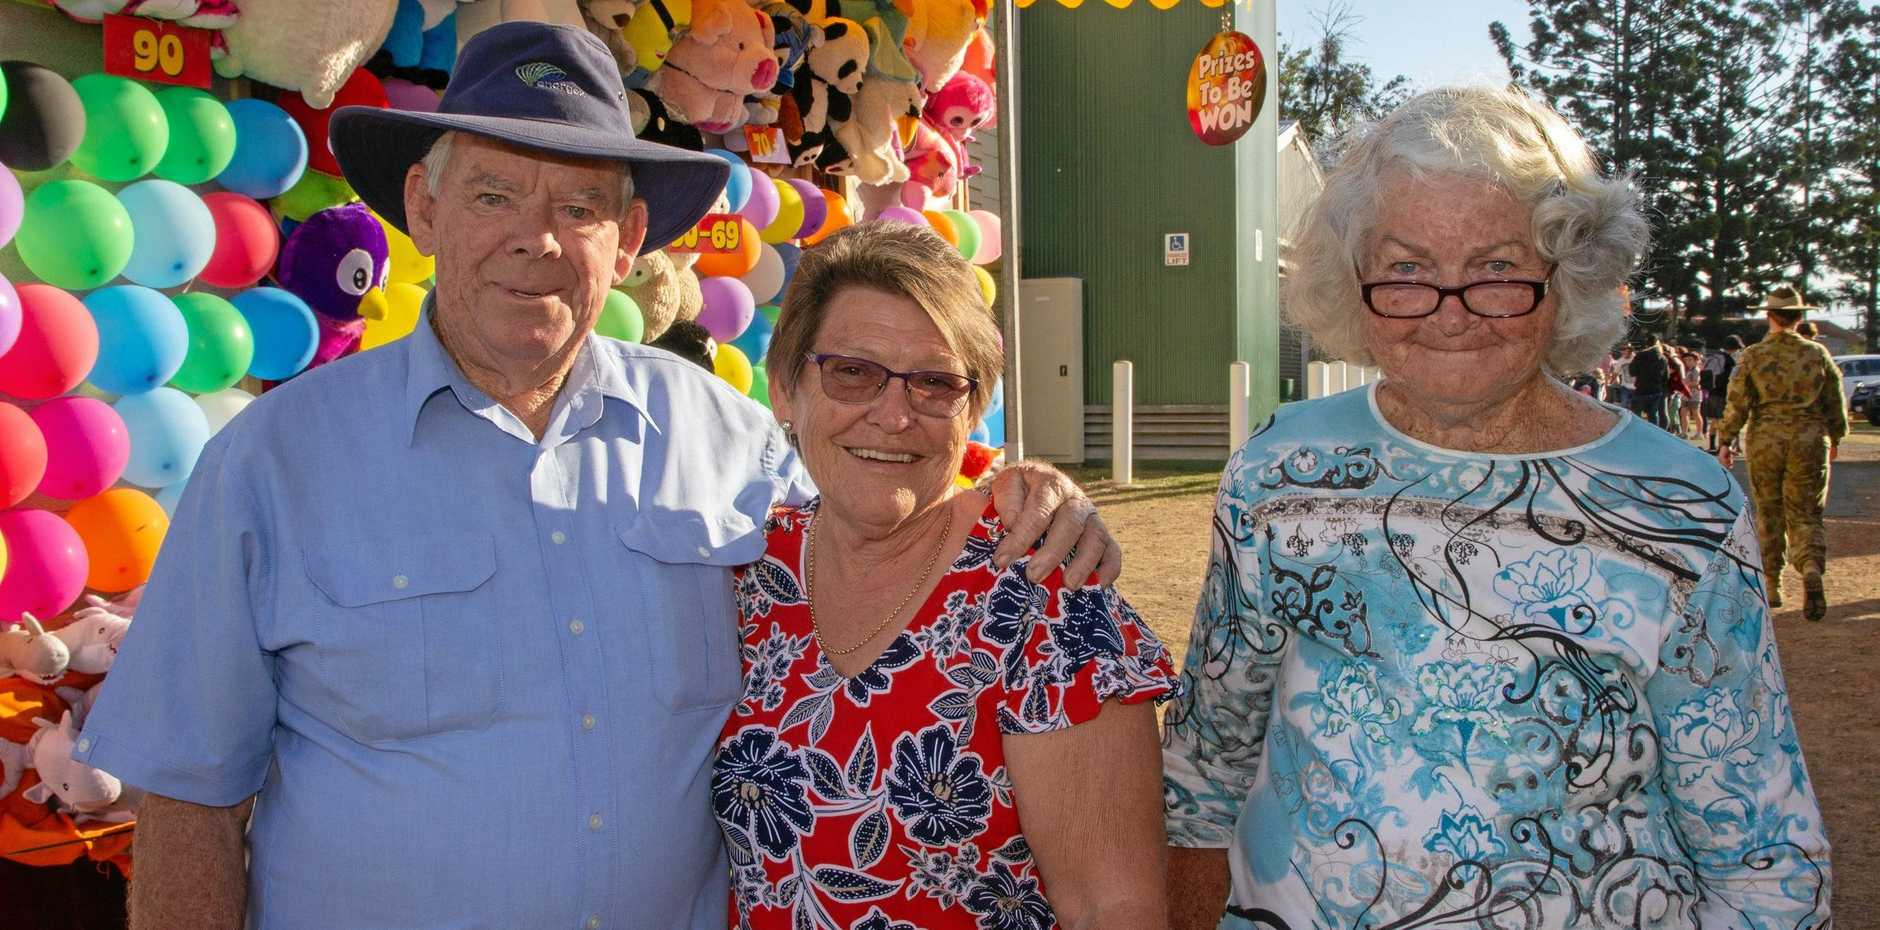 FUN IN THE SUN: Harry and Nola Swan with Gwen Stumer enjoyed themselves at the 2019 Lowood Show. This year was the first time Nola had been to a Lowood Show since she was 15 years old.